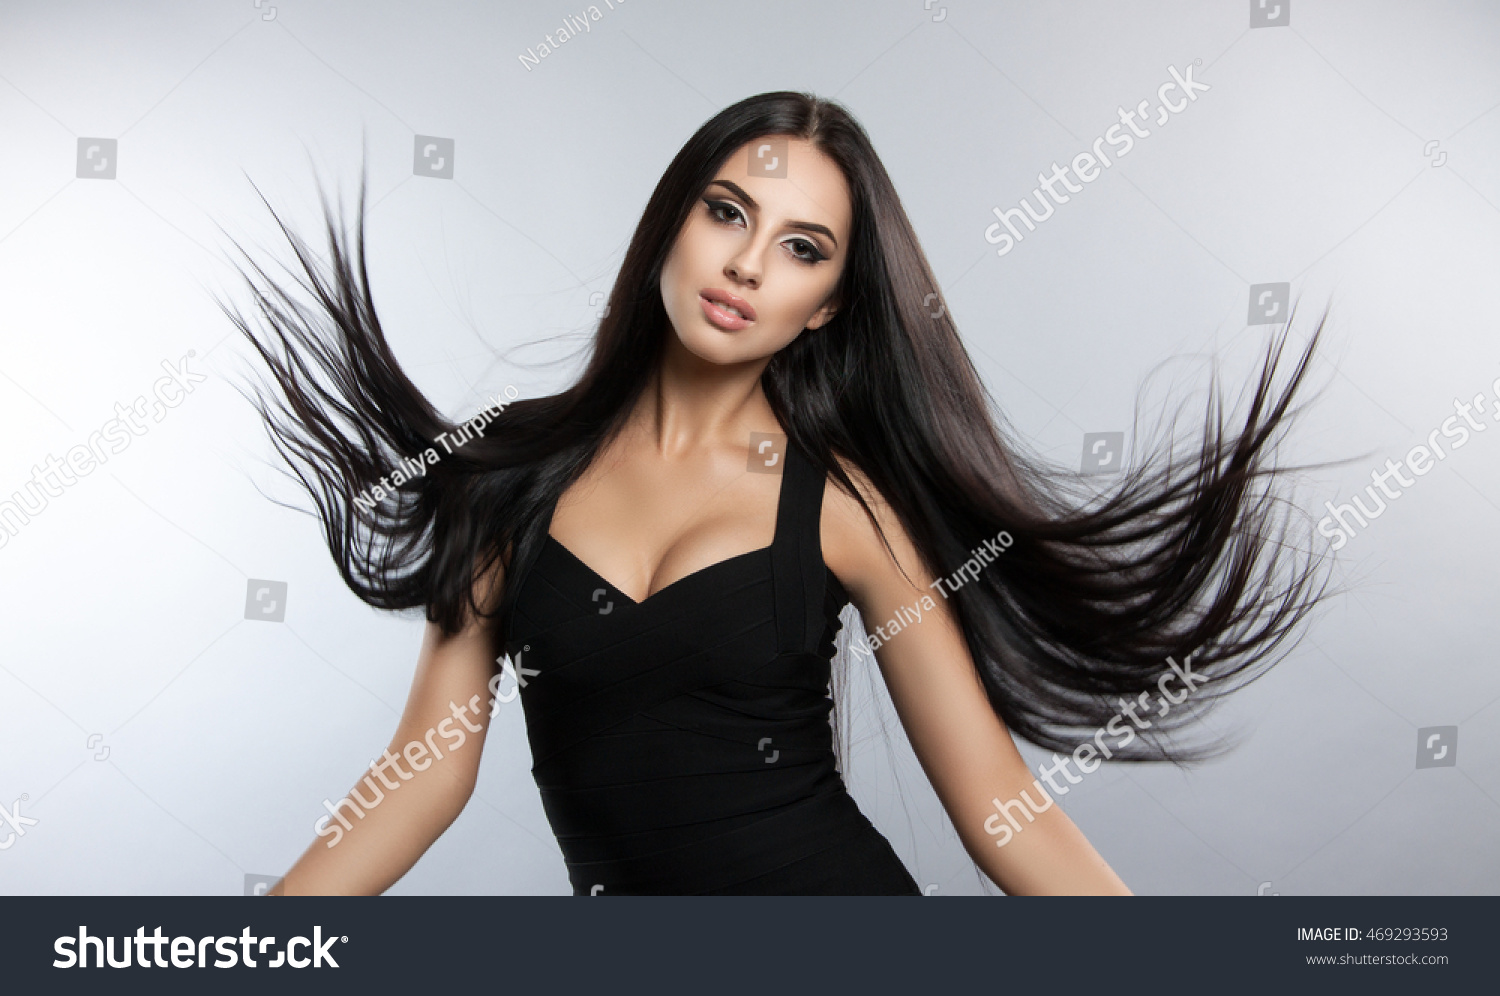 Black dress hairstyle - Beautiful Model With Smooth Flying Hair Fashion Portrait Of A Brunette Woman In A Black